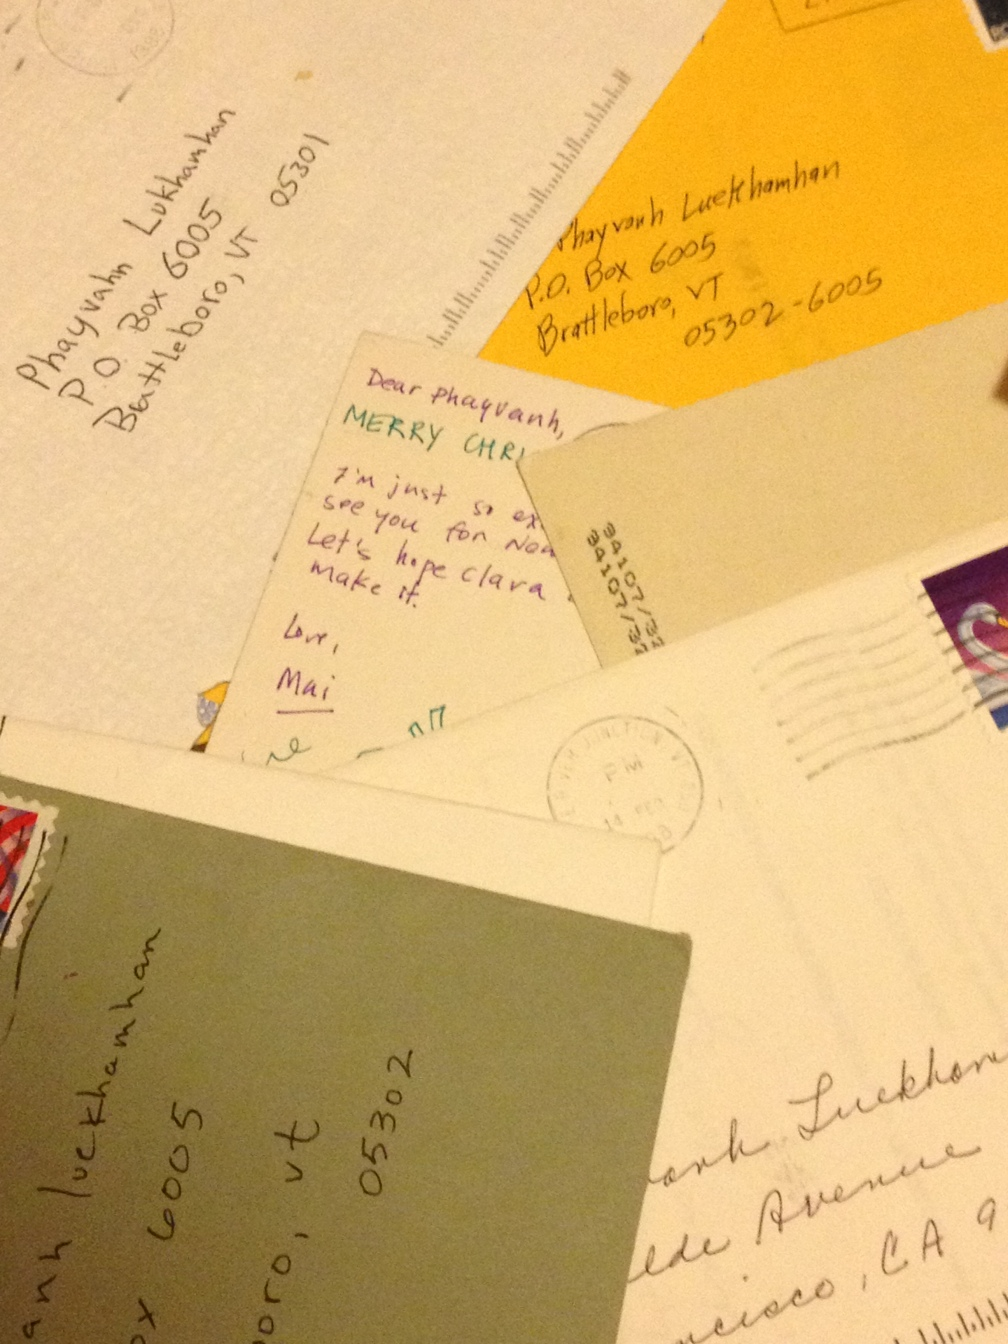 I used to write and receive many letters